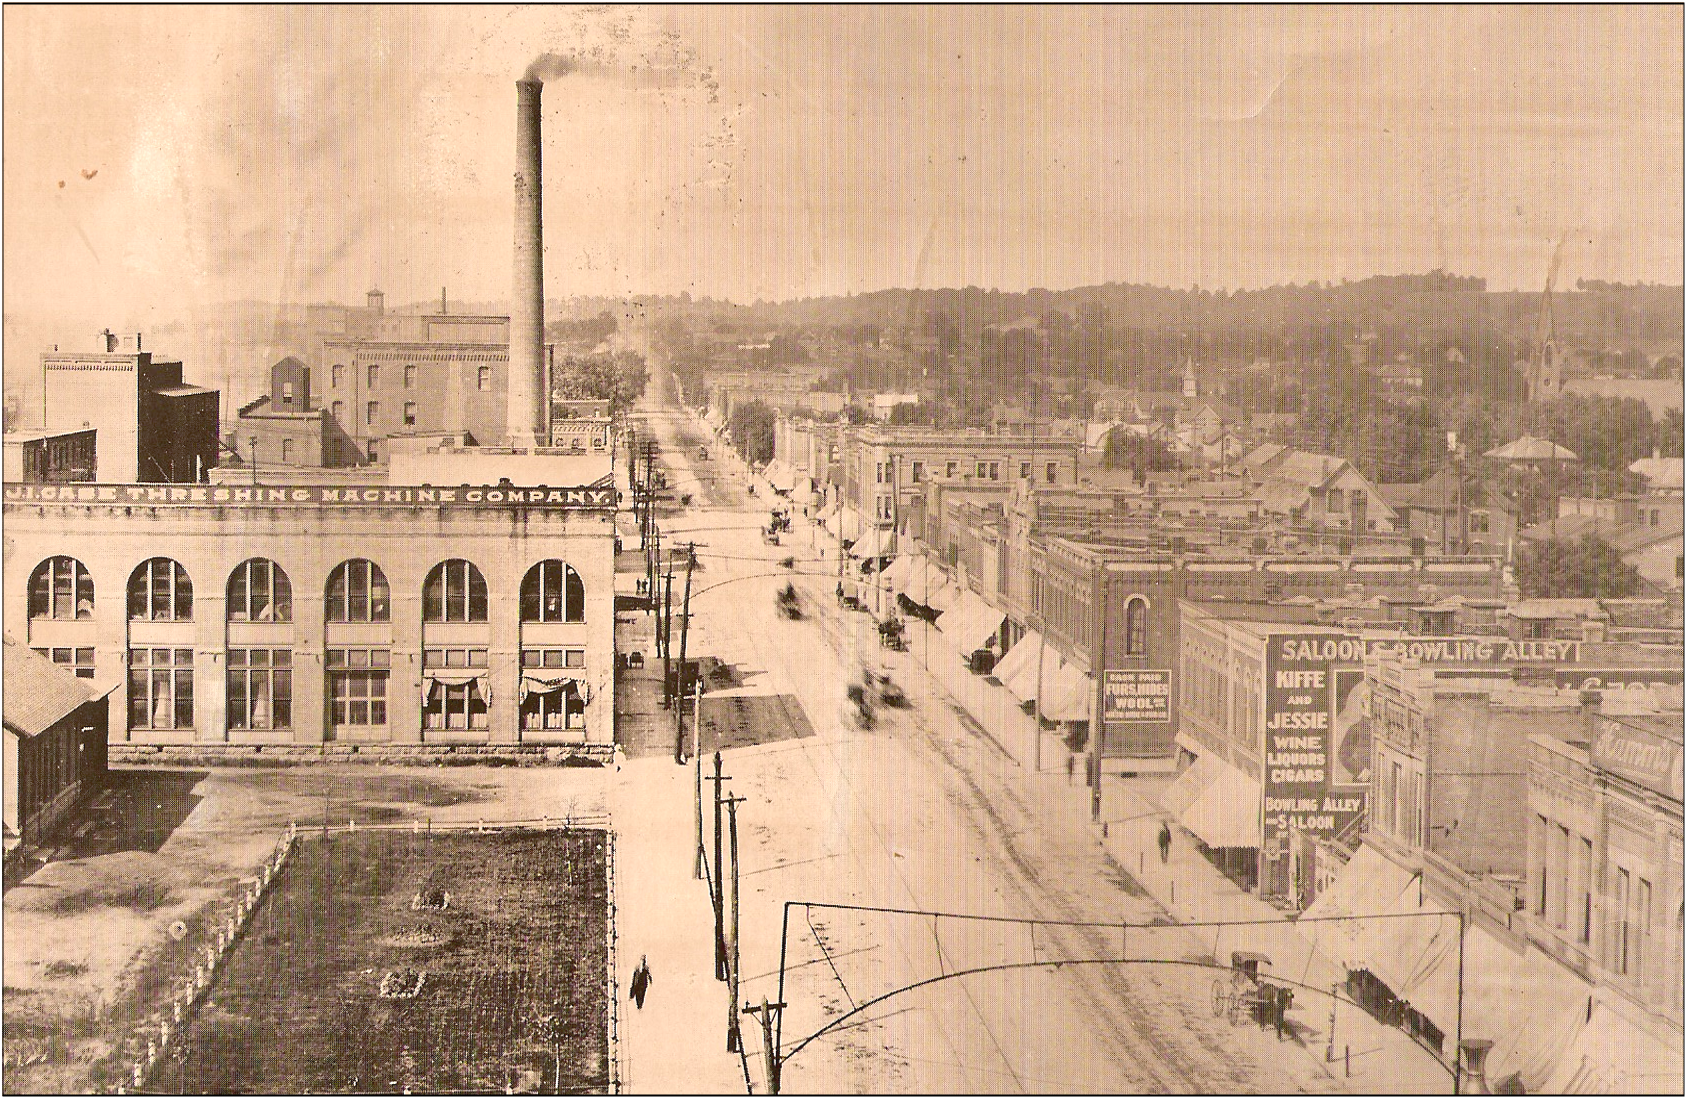 View of North Front Street (present day N Riverfront Drive) in Mankato, Minnesota around 1900.